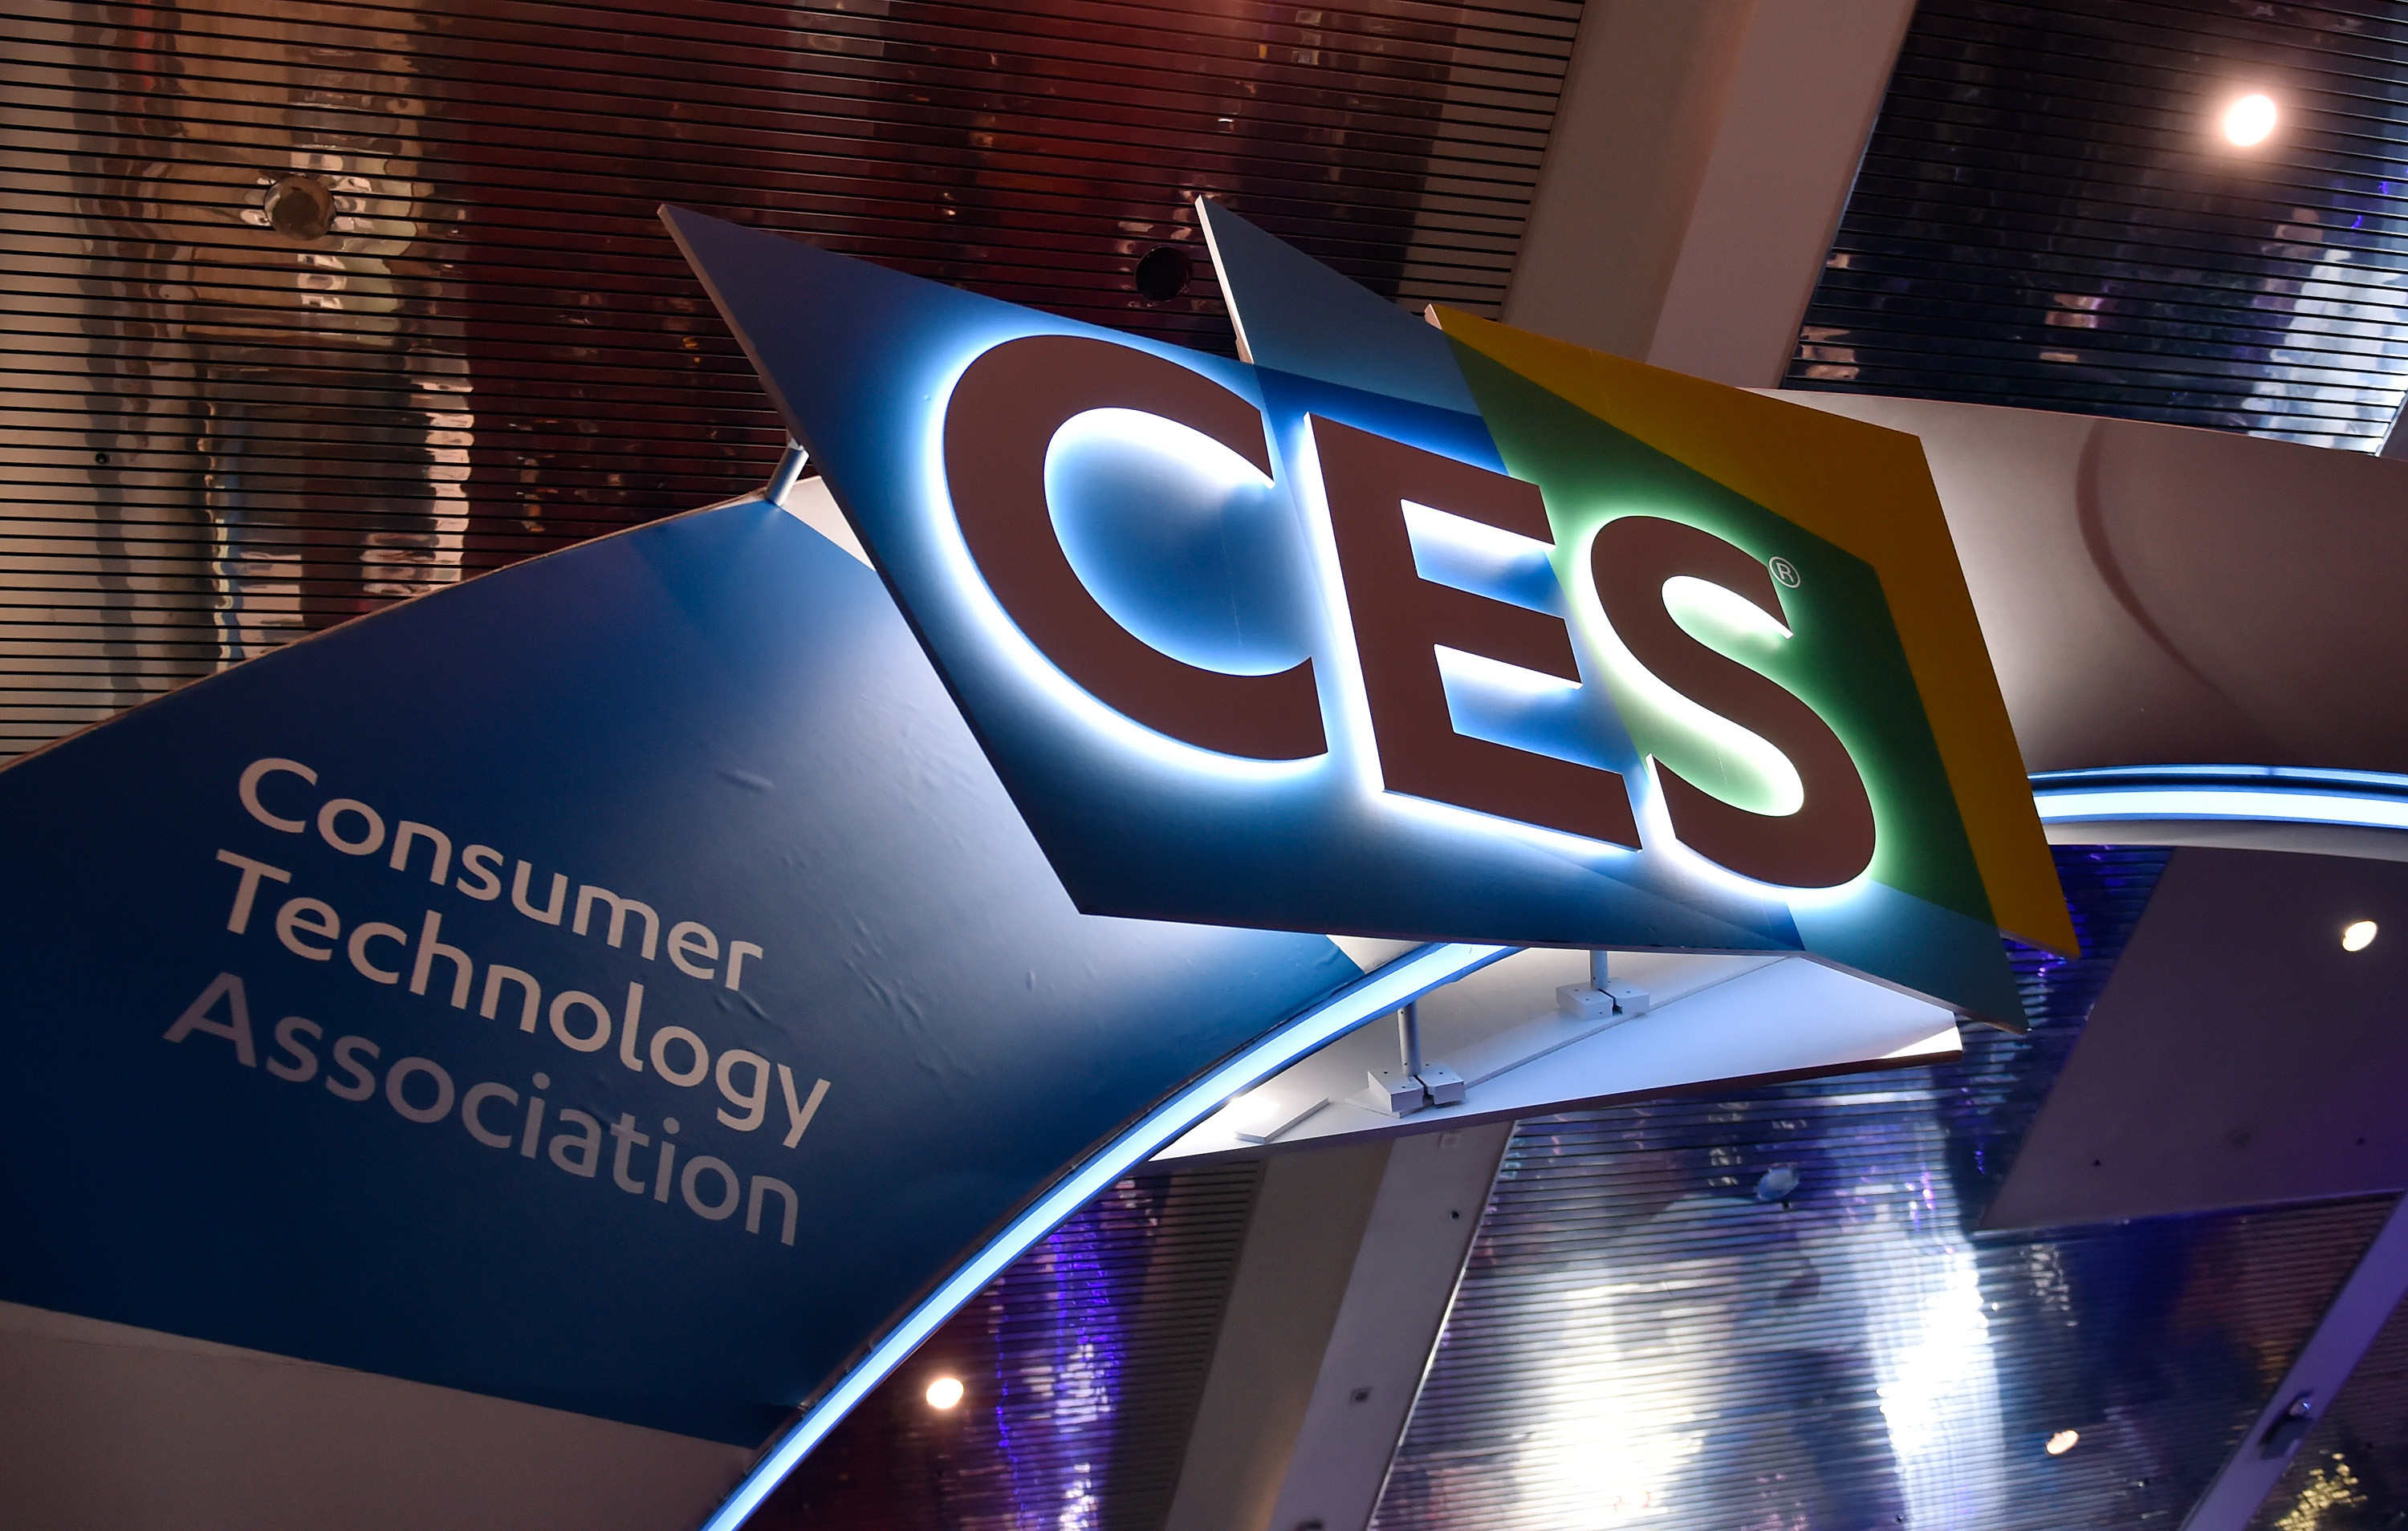 LAS VEGAS, NV - JANUARY 09:  The CES logo is seen during CES 2018 at the Las Vegas Convention Center on January 9, 2018 in Las Vegas, Nevada. CES, the world's largest annual consumer technology trade show, runs through January 12 and features about 3,900 exhibitors showing off their latest products and services to more than 170,000 attendees.  (Photo by David Becker/Getty Images)